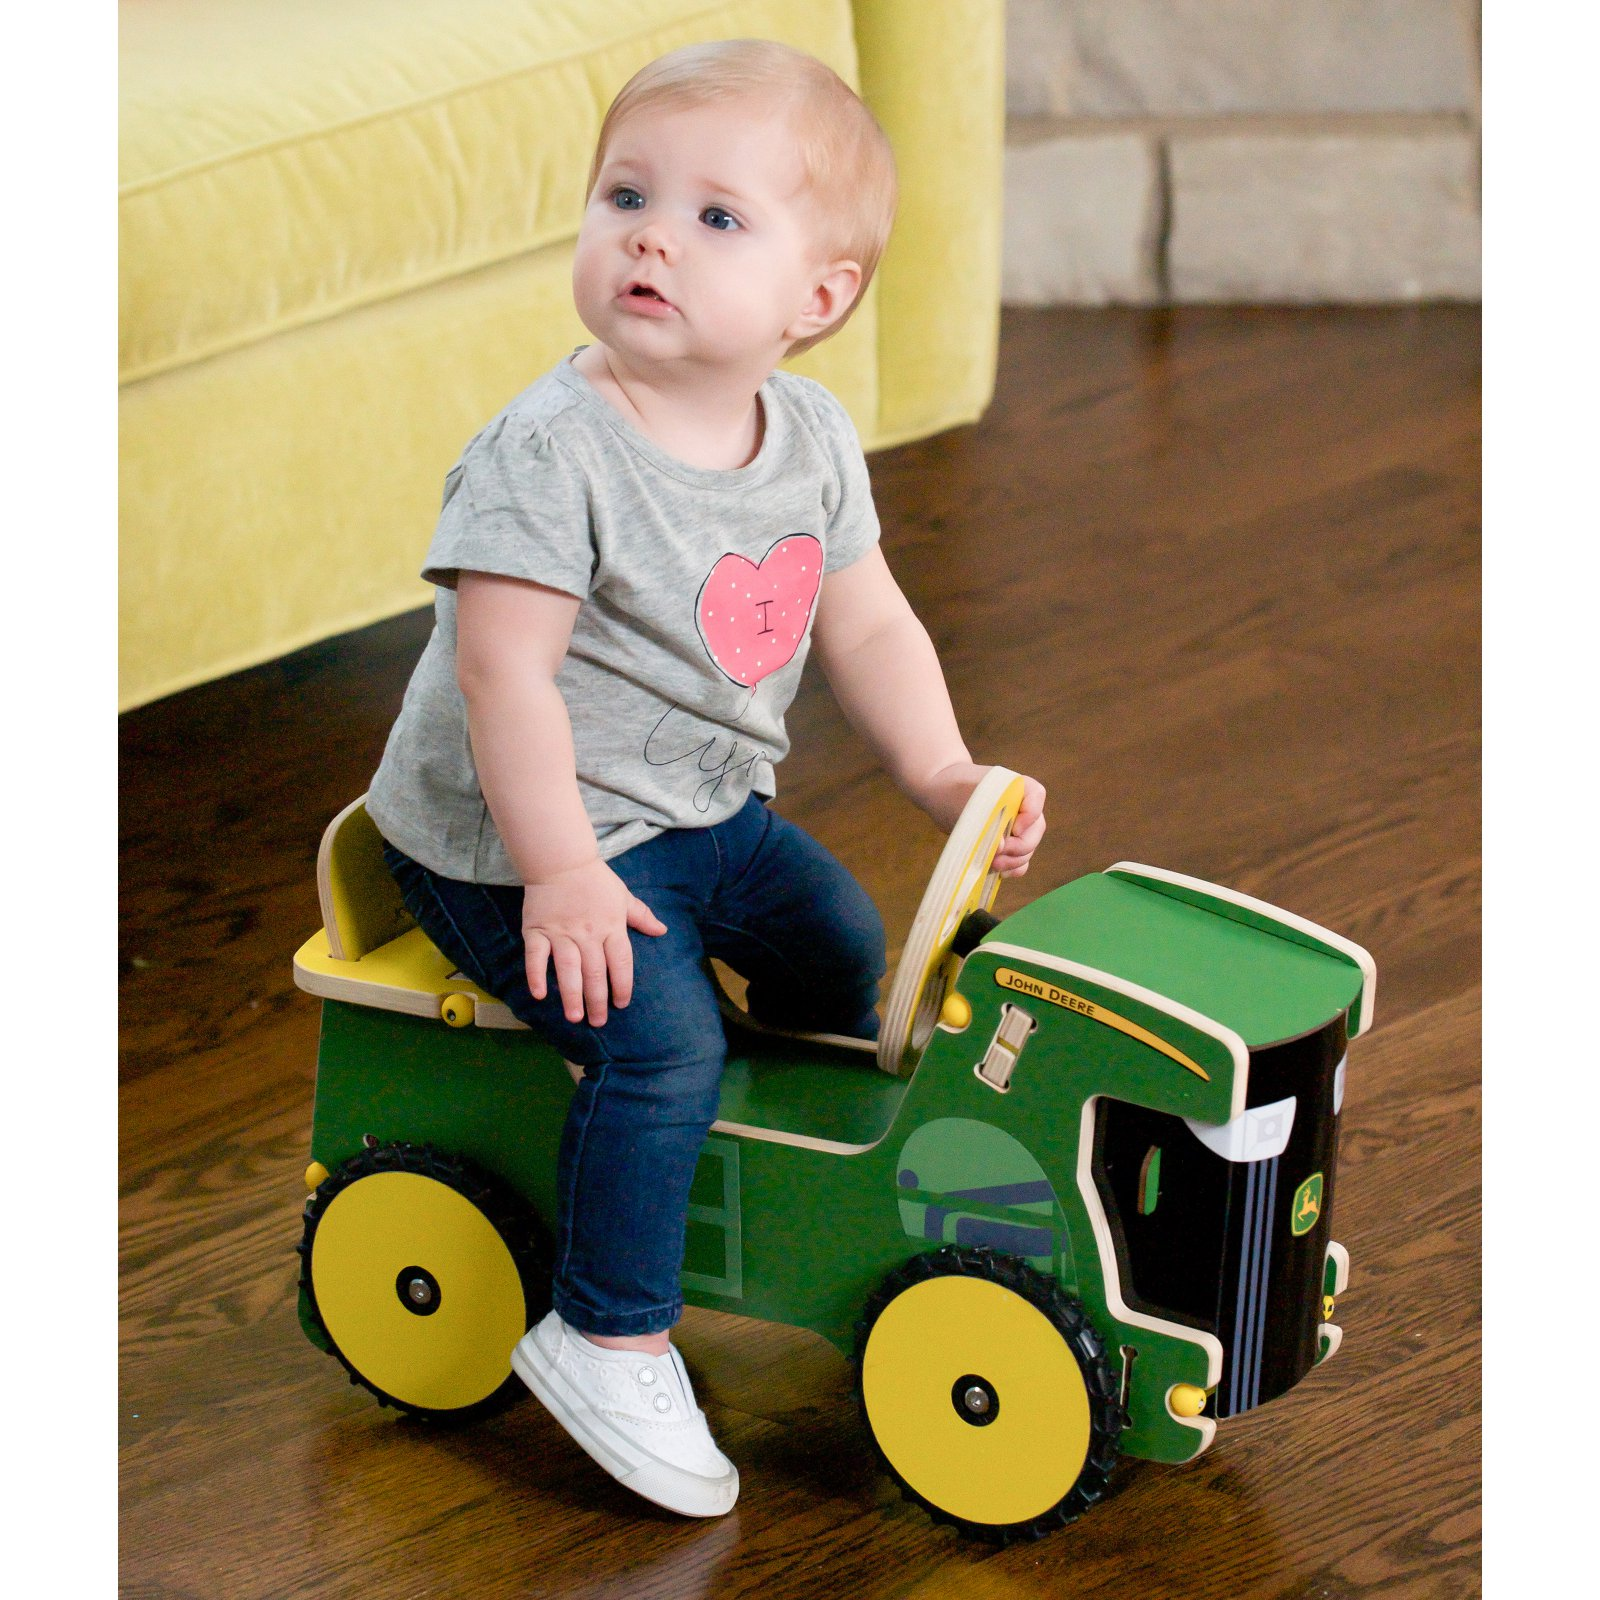 Buildex John Deere Jr Tractor Riding Push Toy